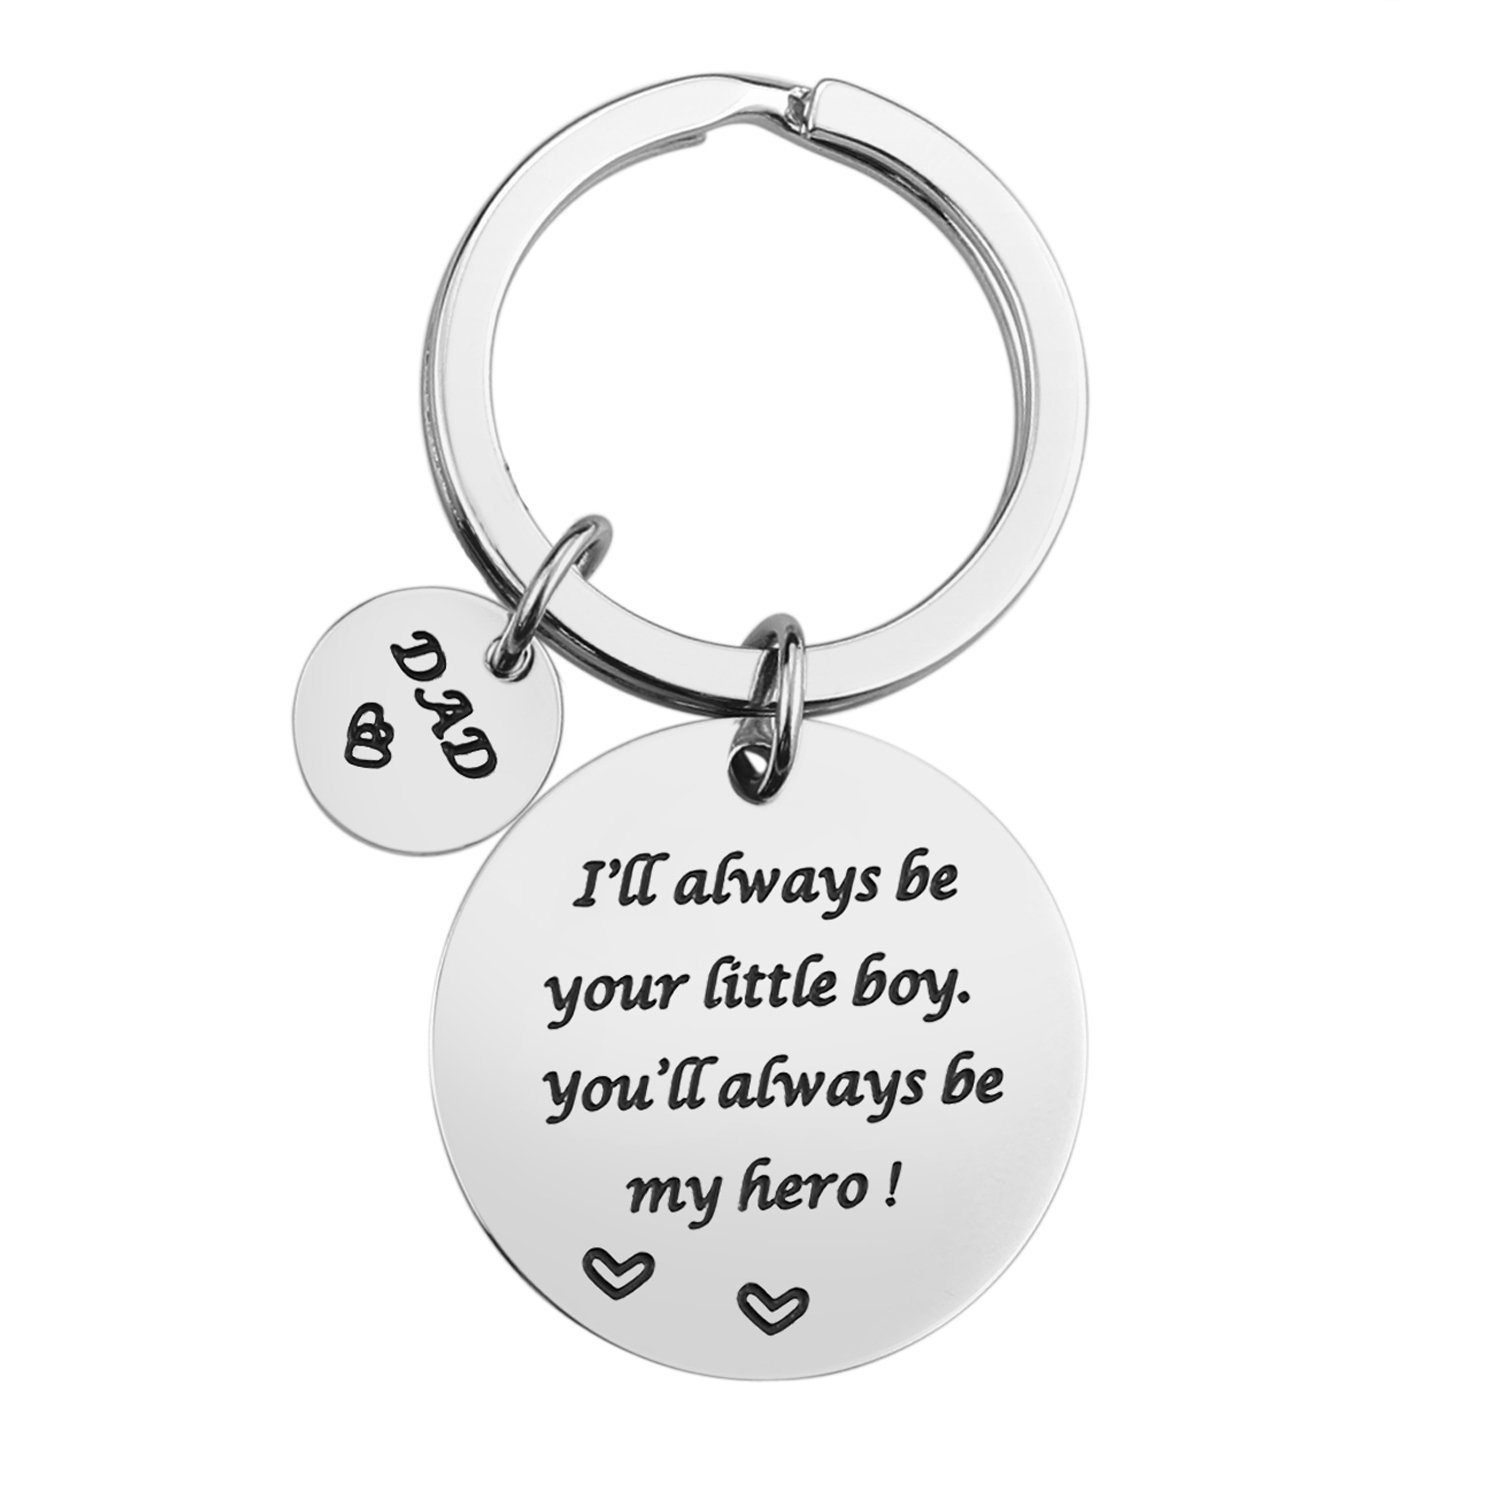 cheap birthday gift for dad find birthday gift for dad deals on Old Birthday get quotations keychain gifts for dad father dad gift idea from wife daughter son kids stainless